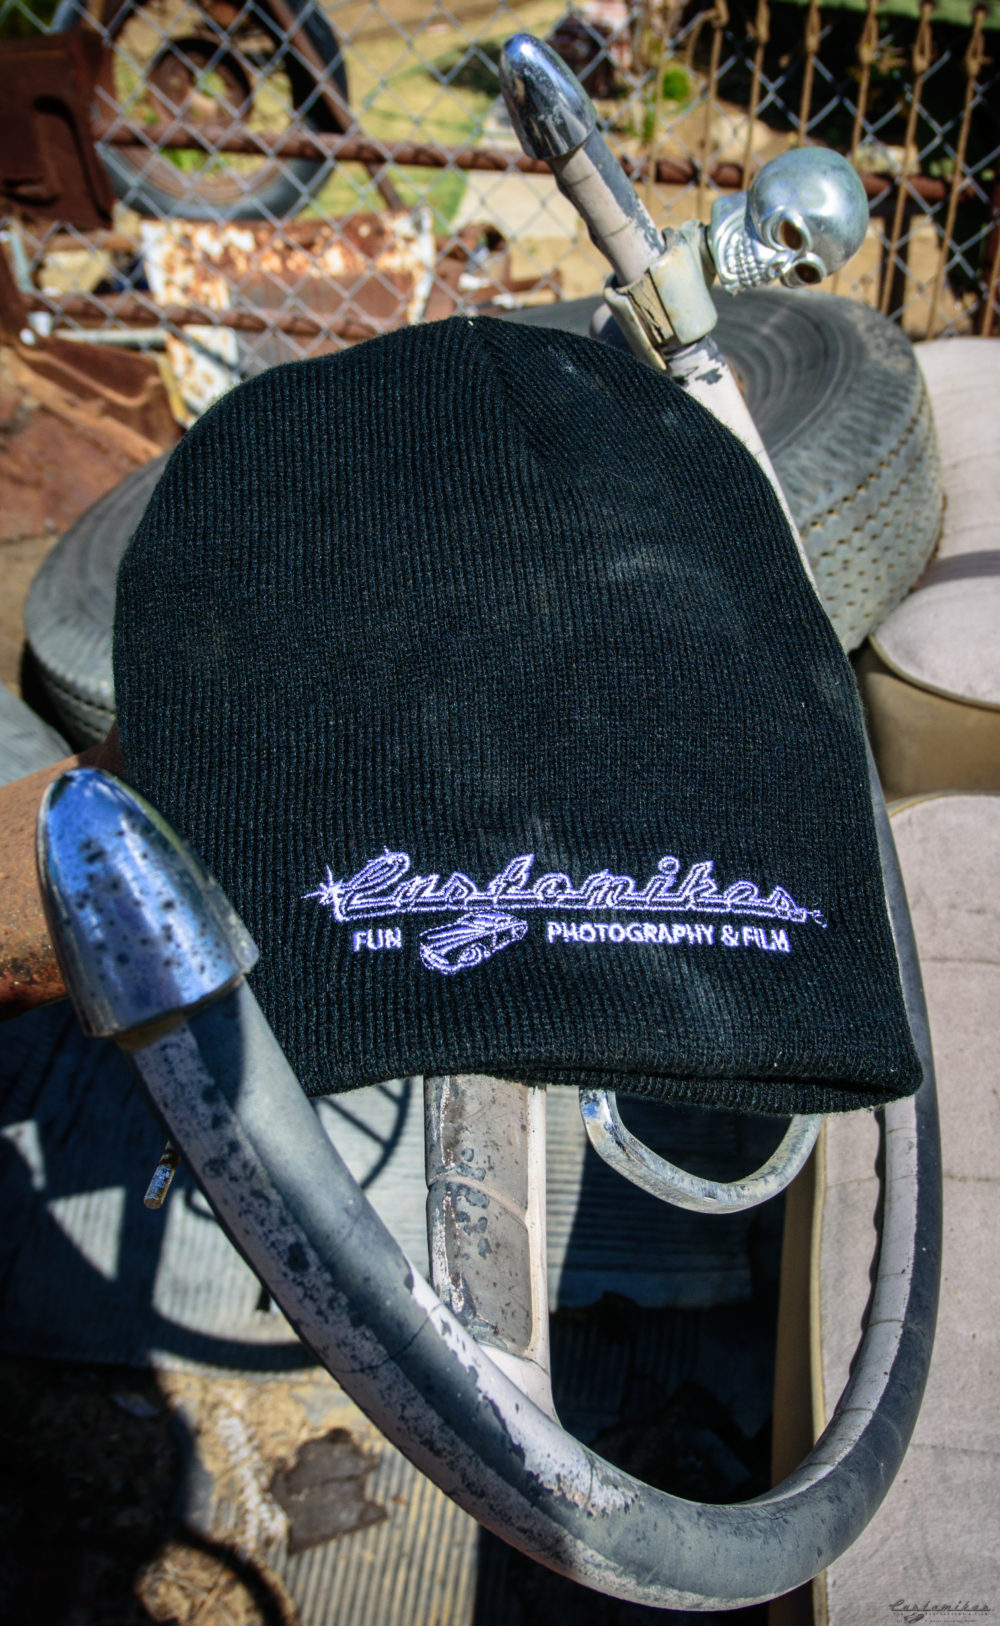 Customikes, hats, beanies, for sale, swag, baseball hat, Packard, steering wheel, skull, kustom